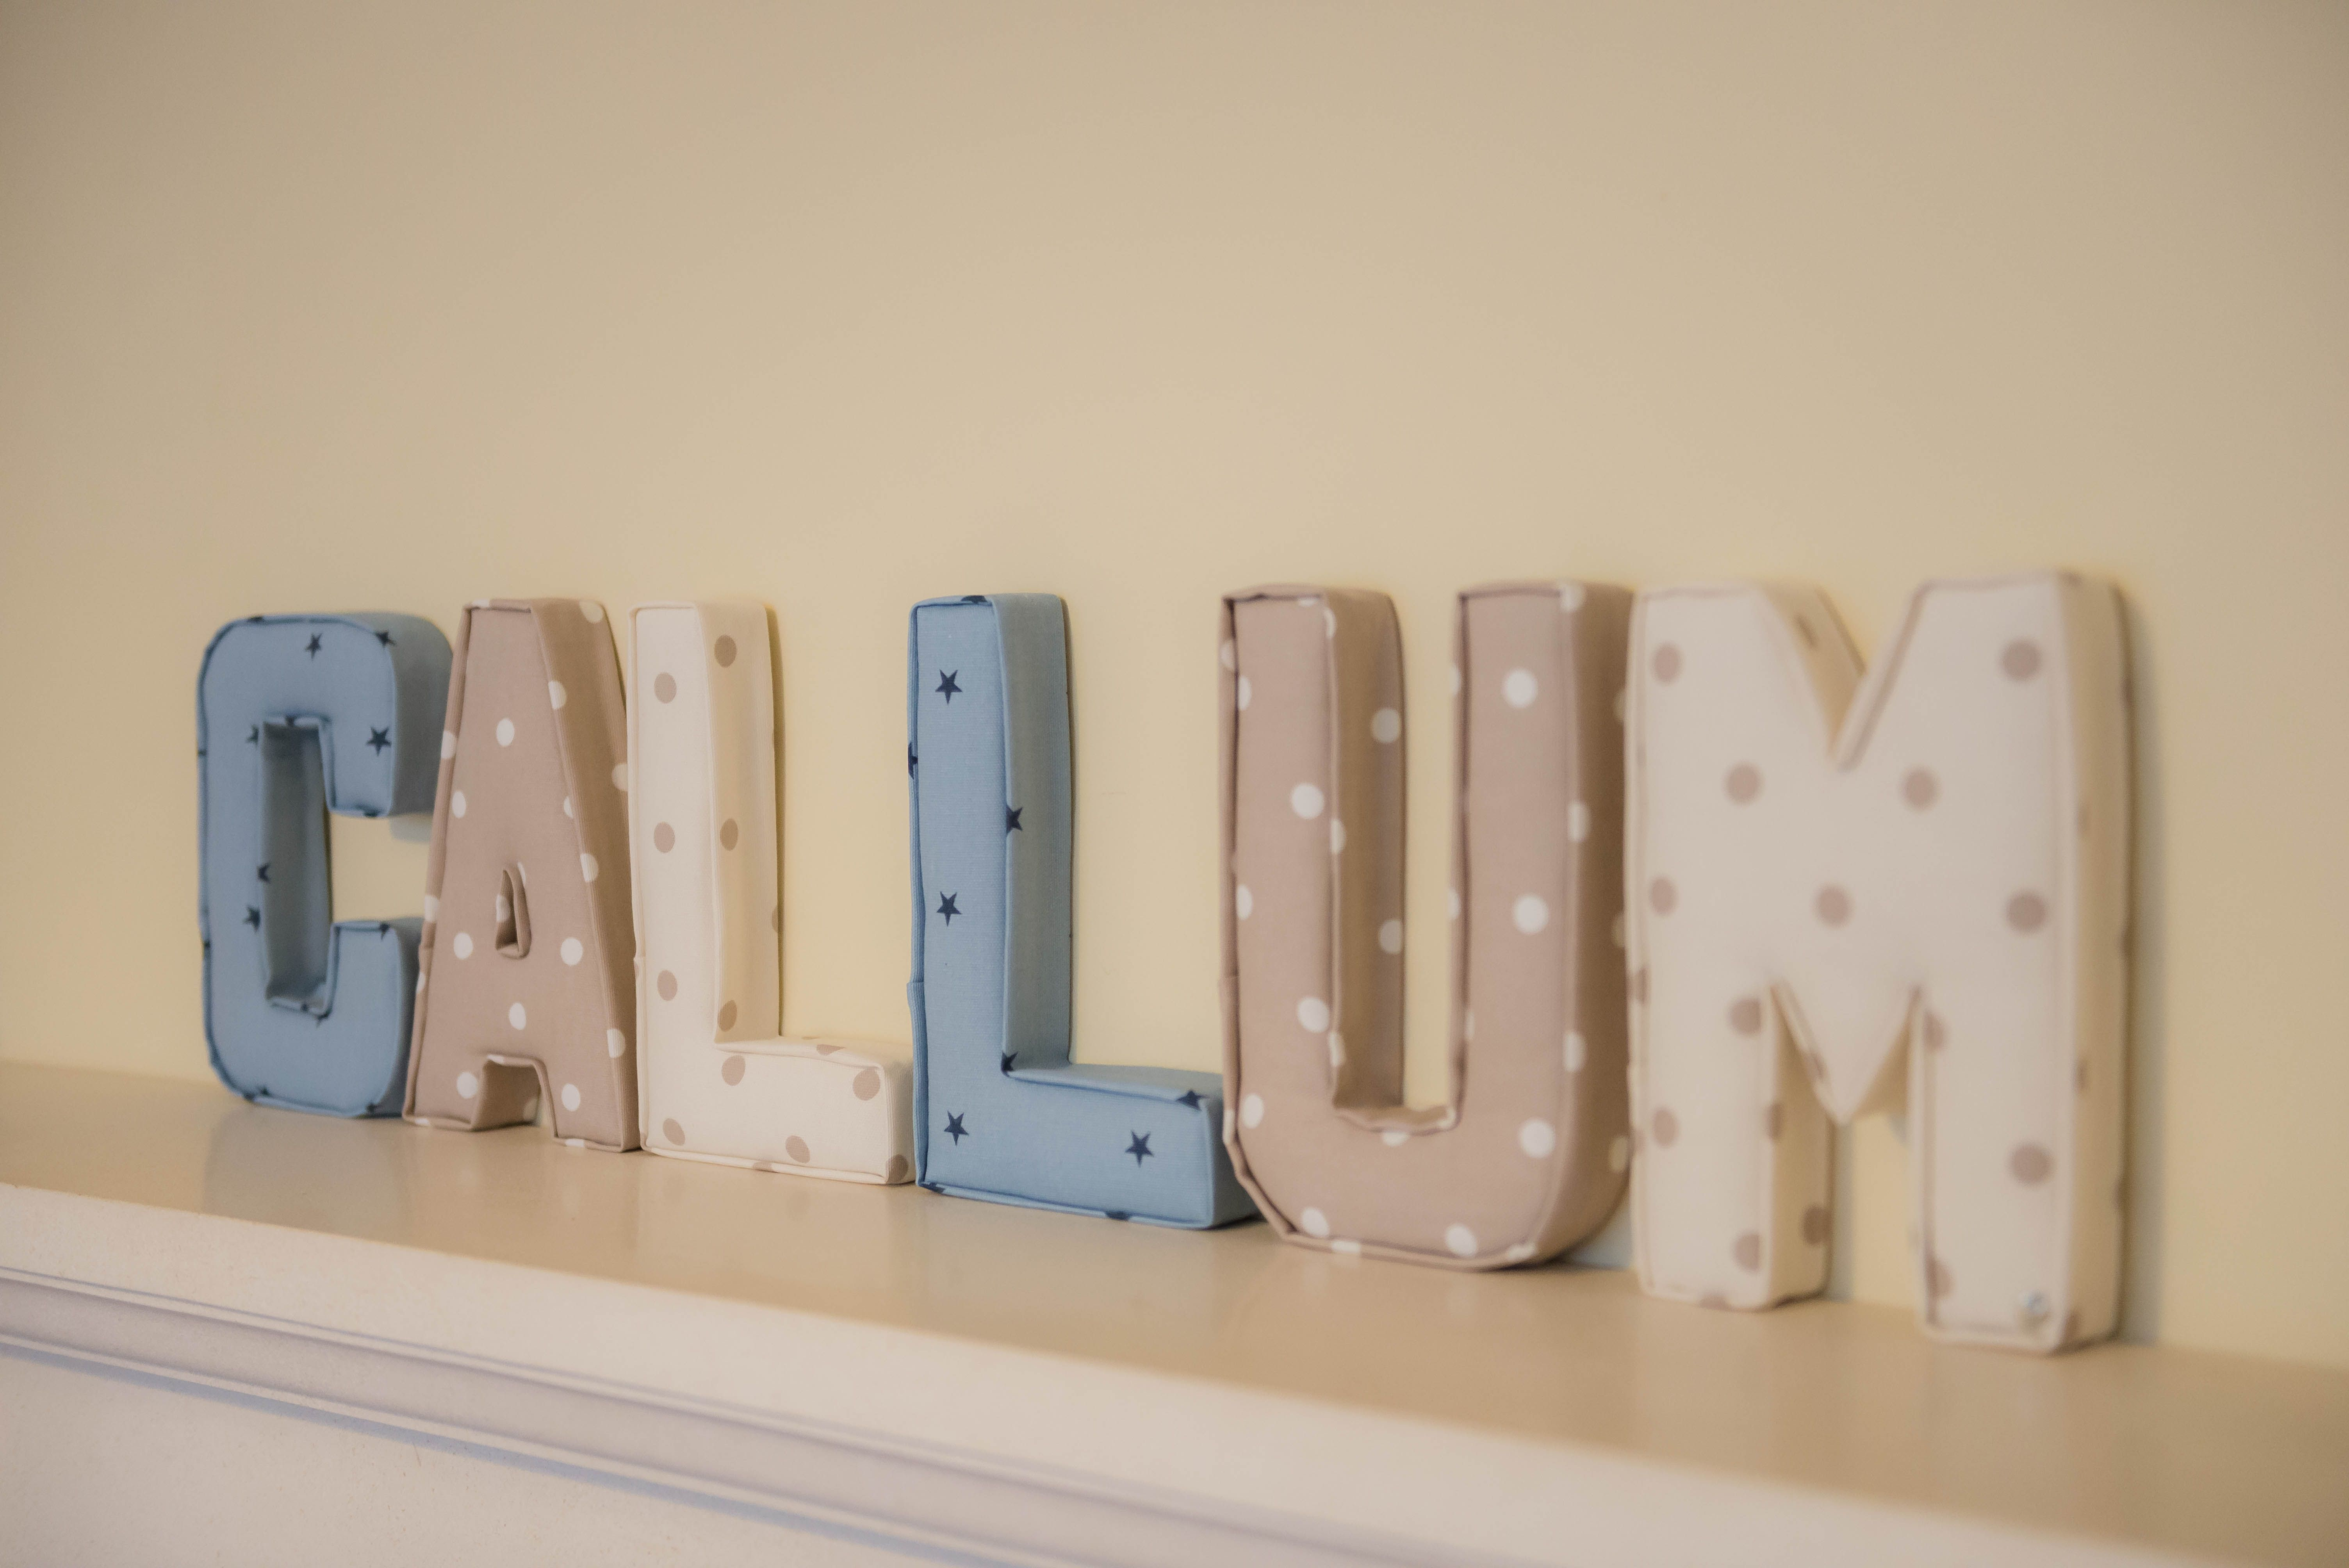 www.lilymaedesigns.co.uk  Our fabric letters are completely personalised so you can choose a combination that will fit with your room perfectly! Made from lightweight bases, the letters are 22cm tall and come with small hooks fixed to the back. Letters can be made plain or with the addition of a name tag, ribbon and button. The majority of our fabrics are 100% cotton and heavy weight. Available to order now www.lilymaedesigns.co.uk